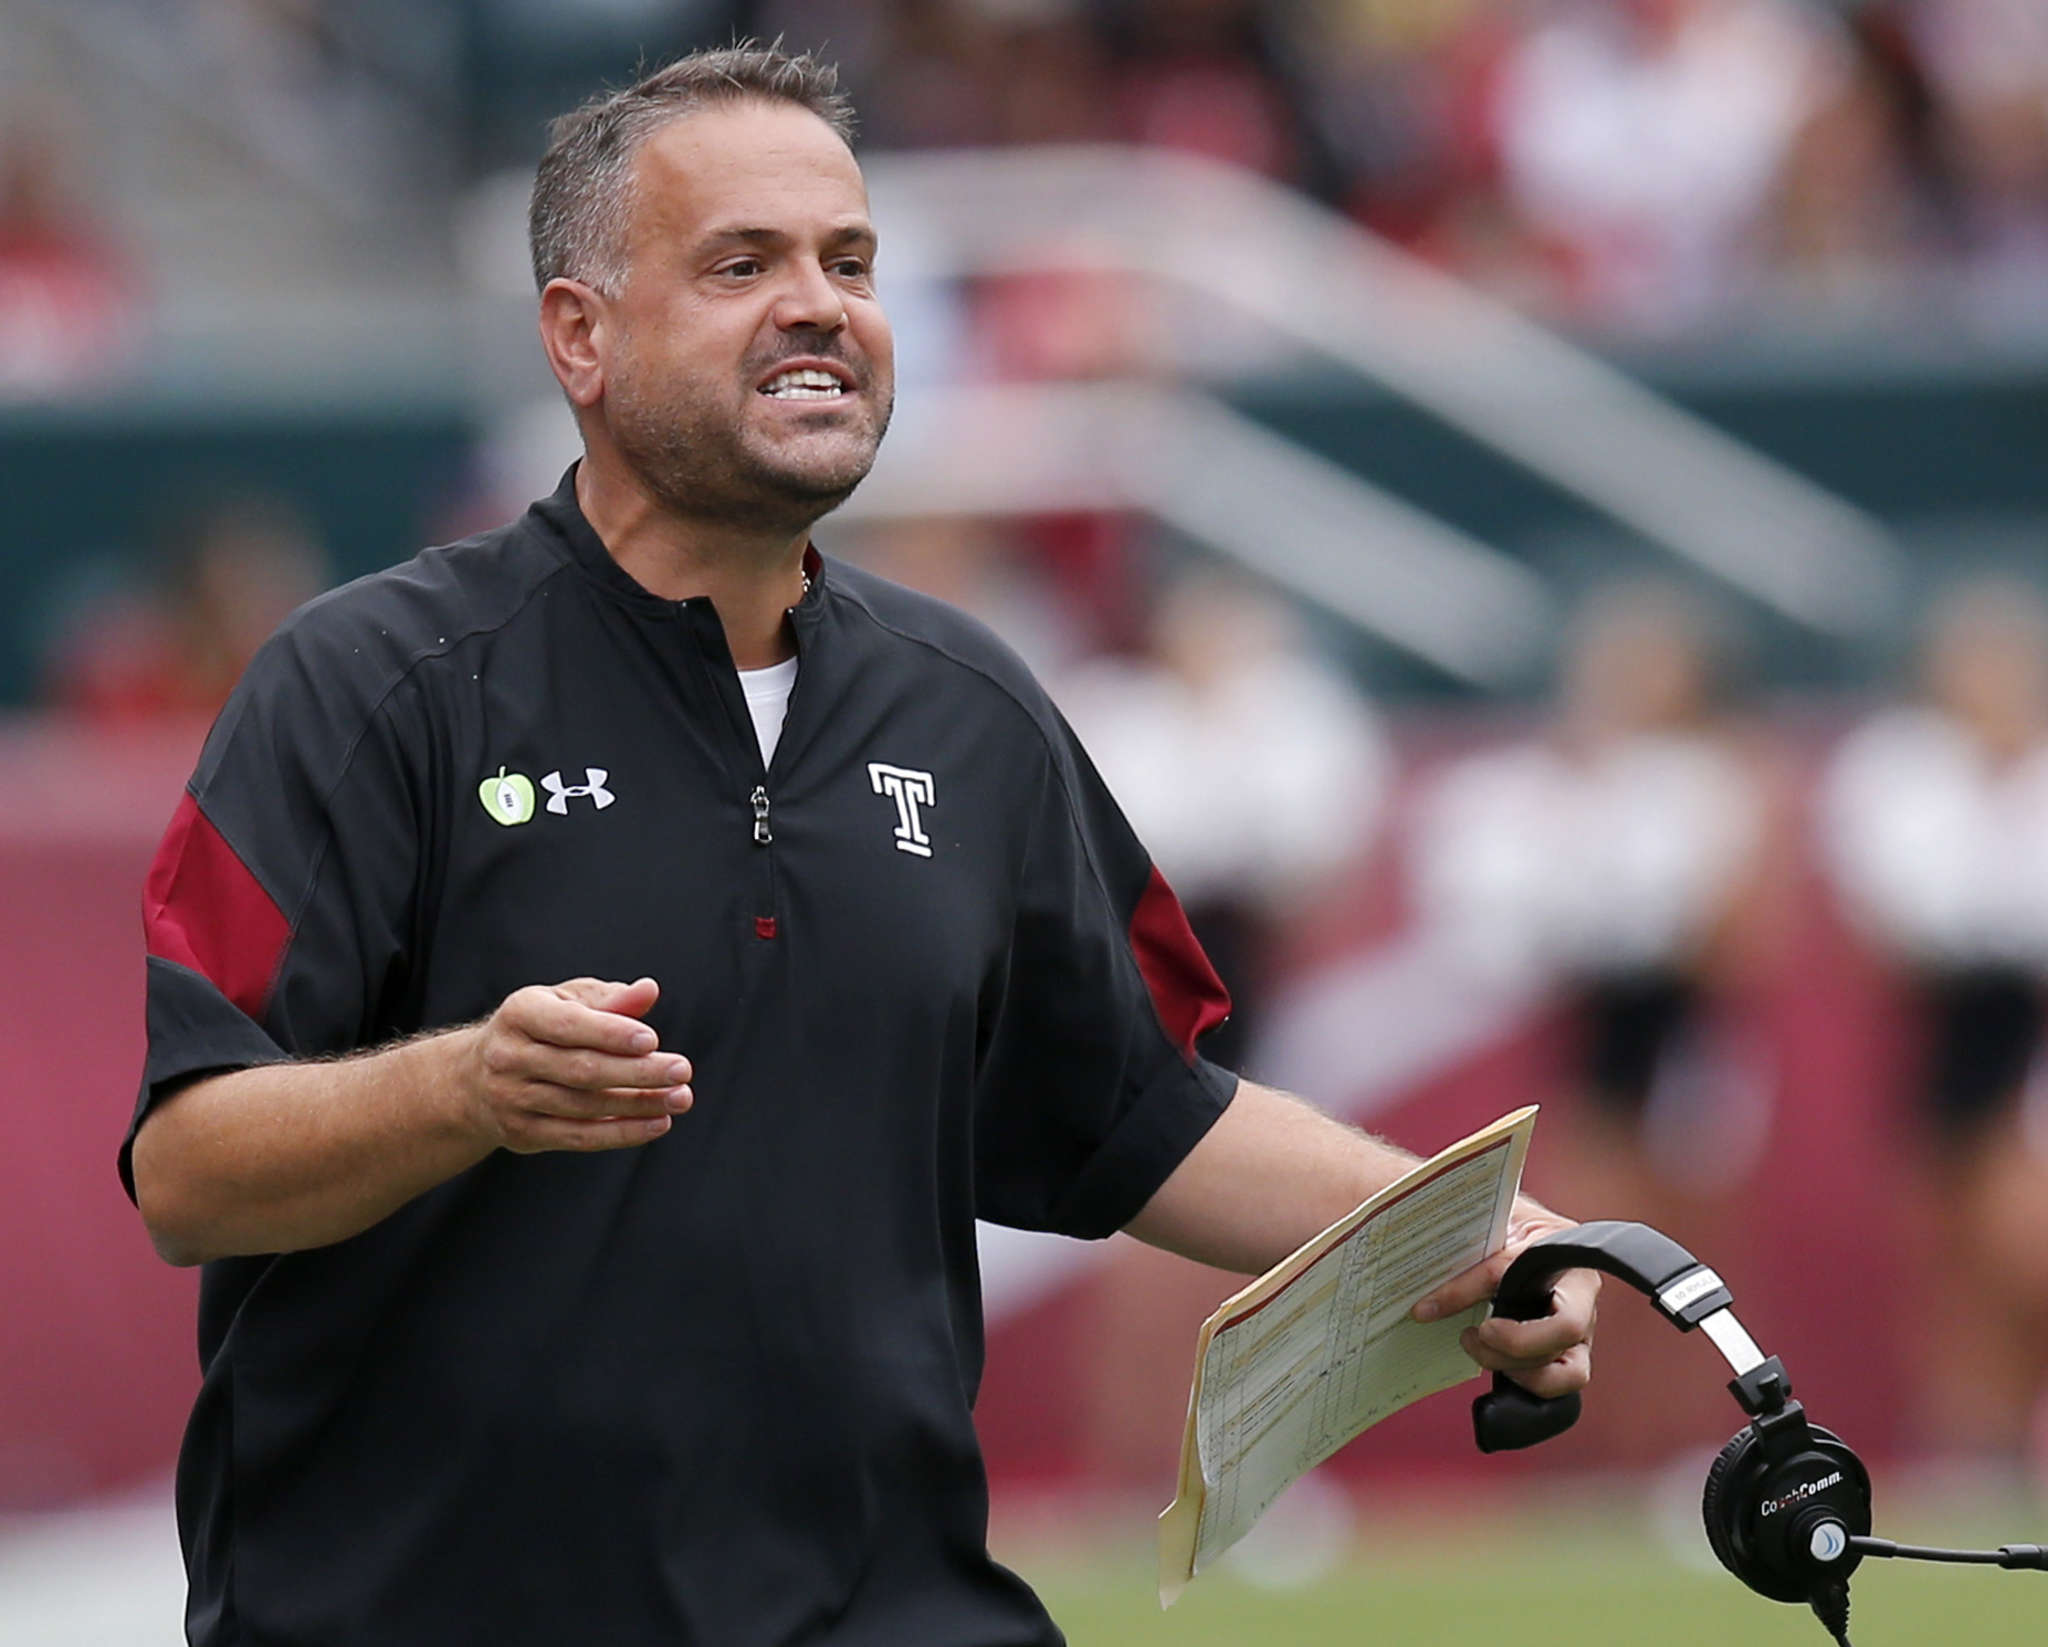 Matt Rhule says he wants to replicate his Temple success at Baylor.